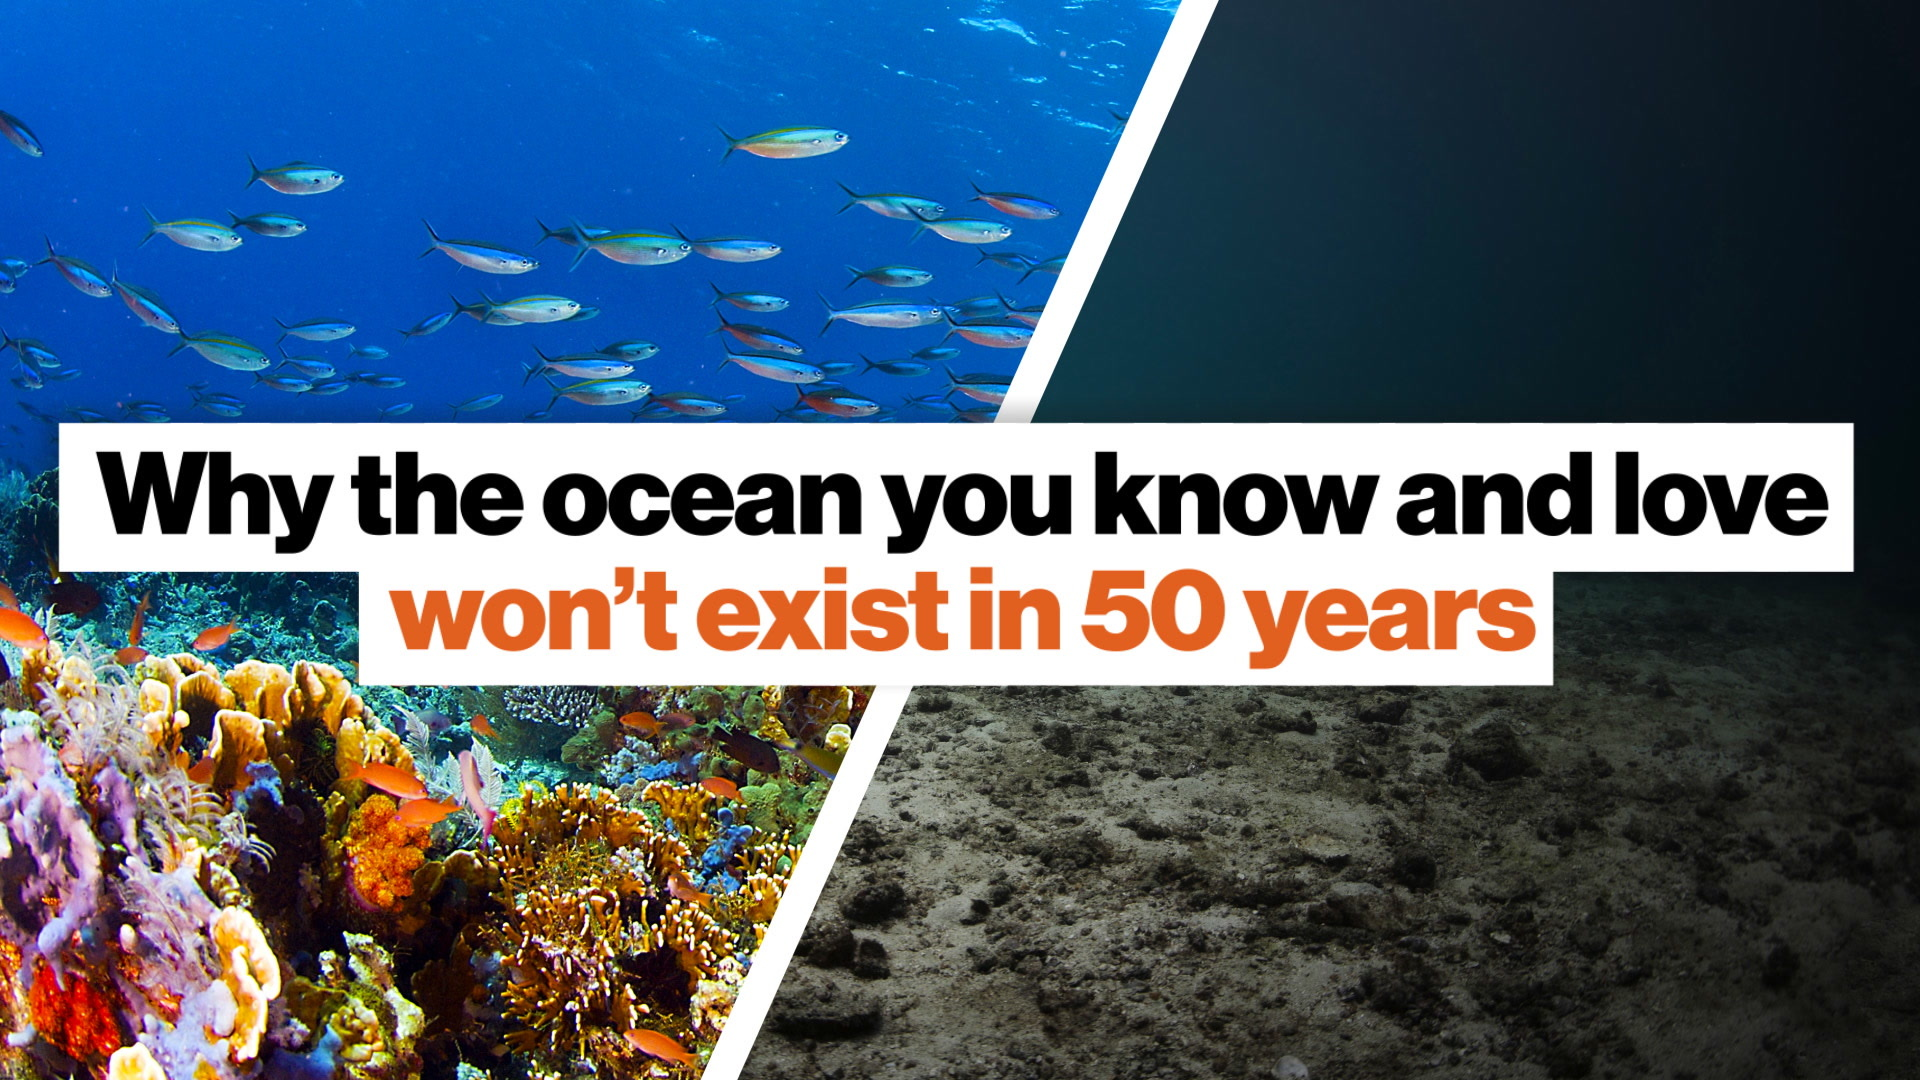 Why the ocean you know and love won't exist in 50 years